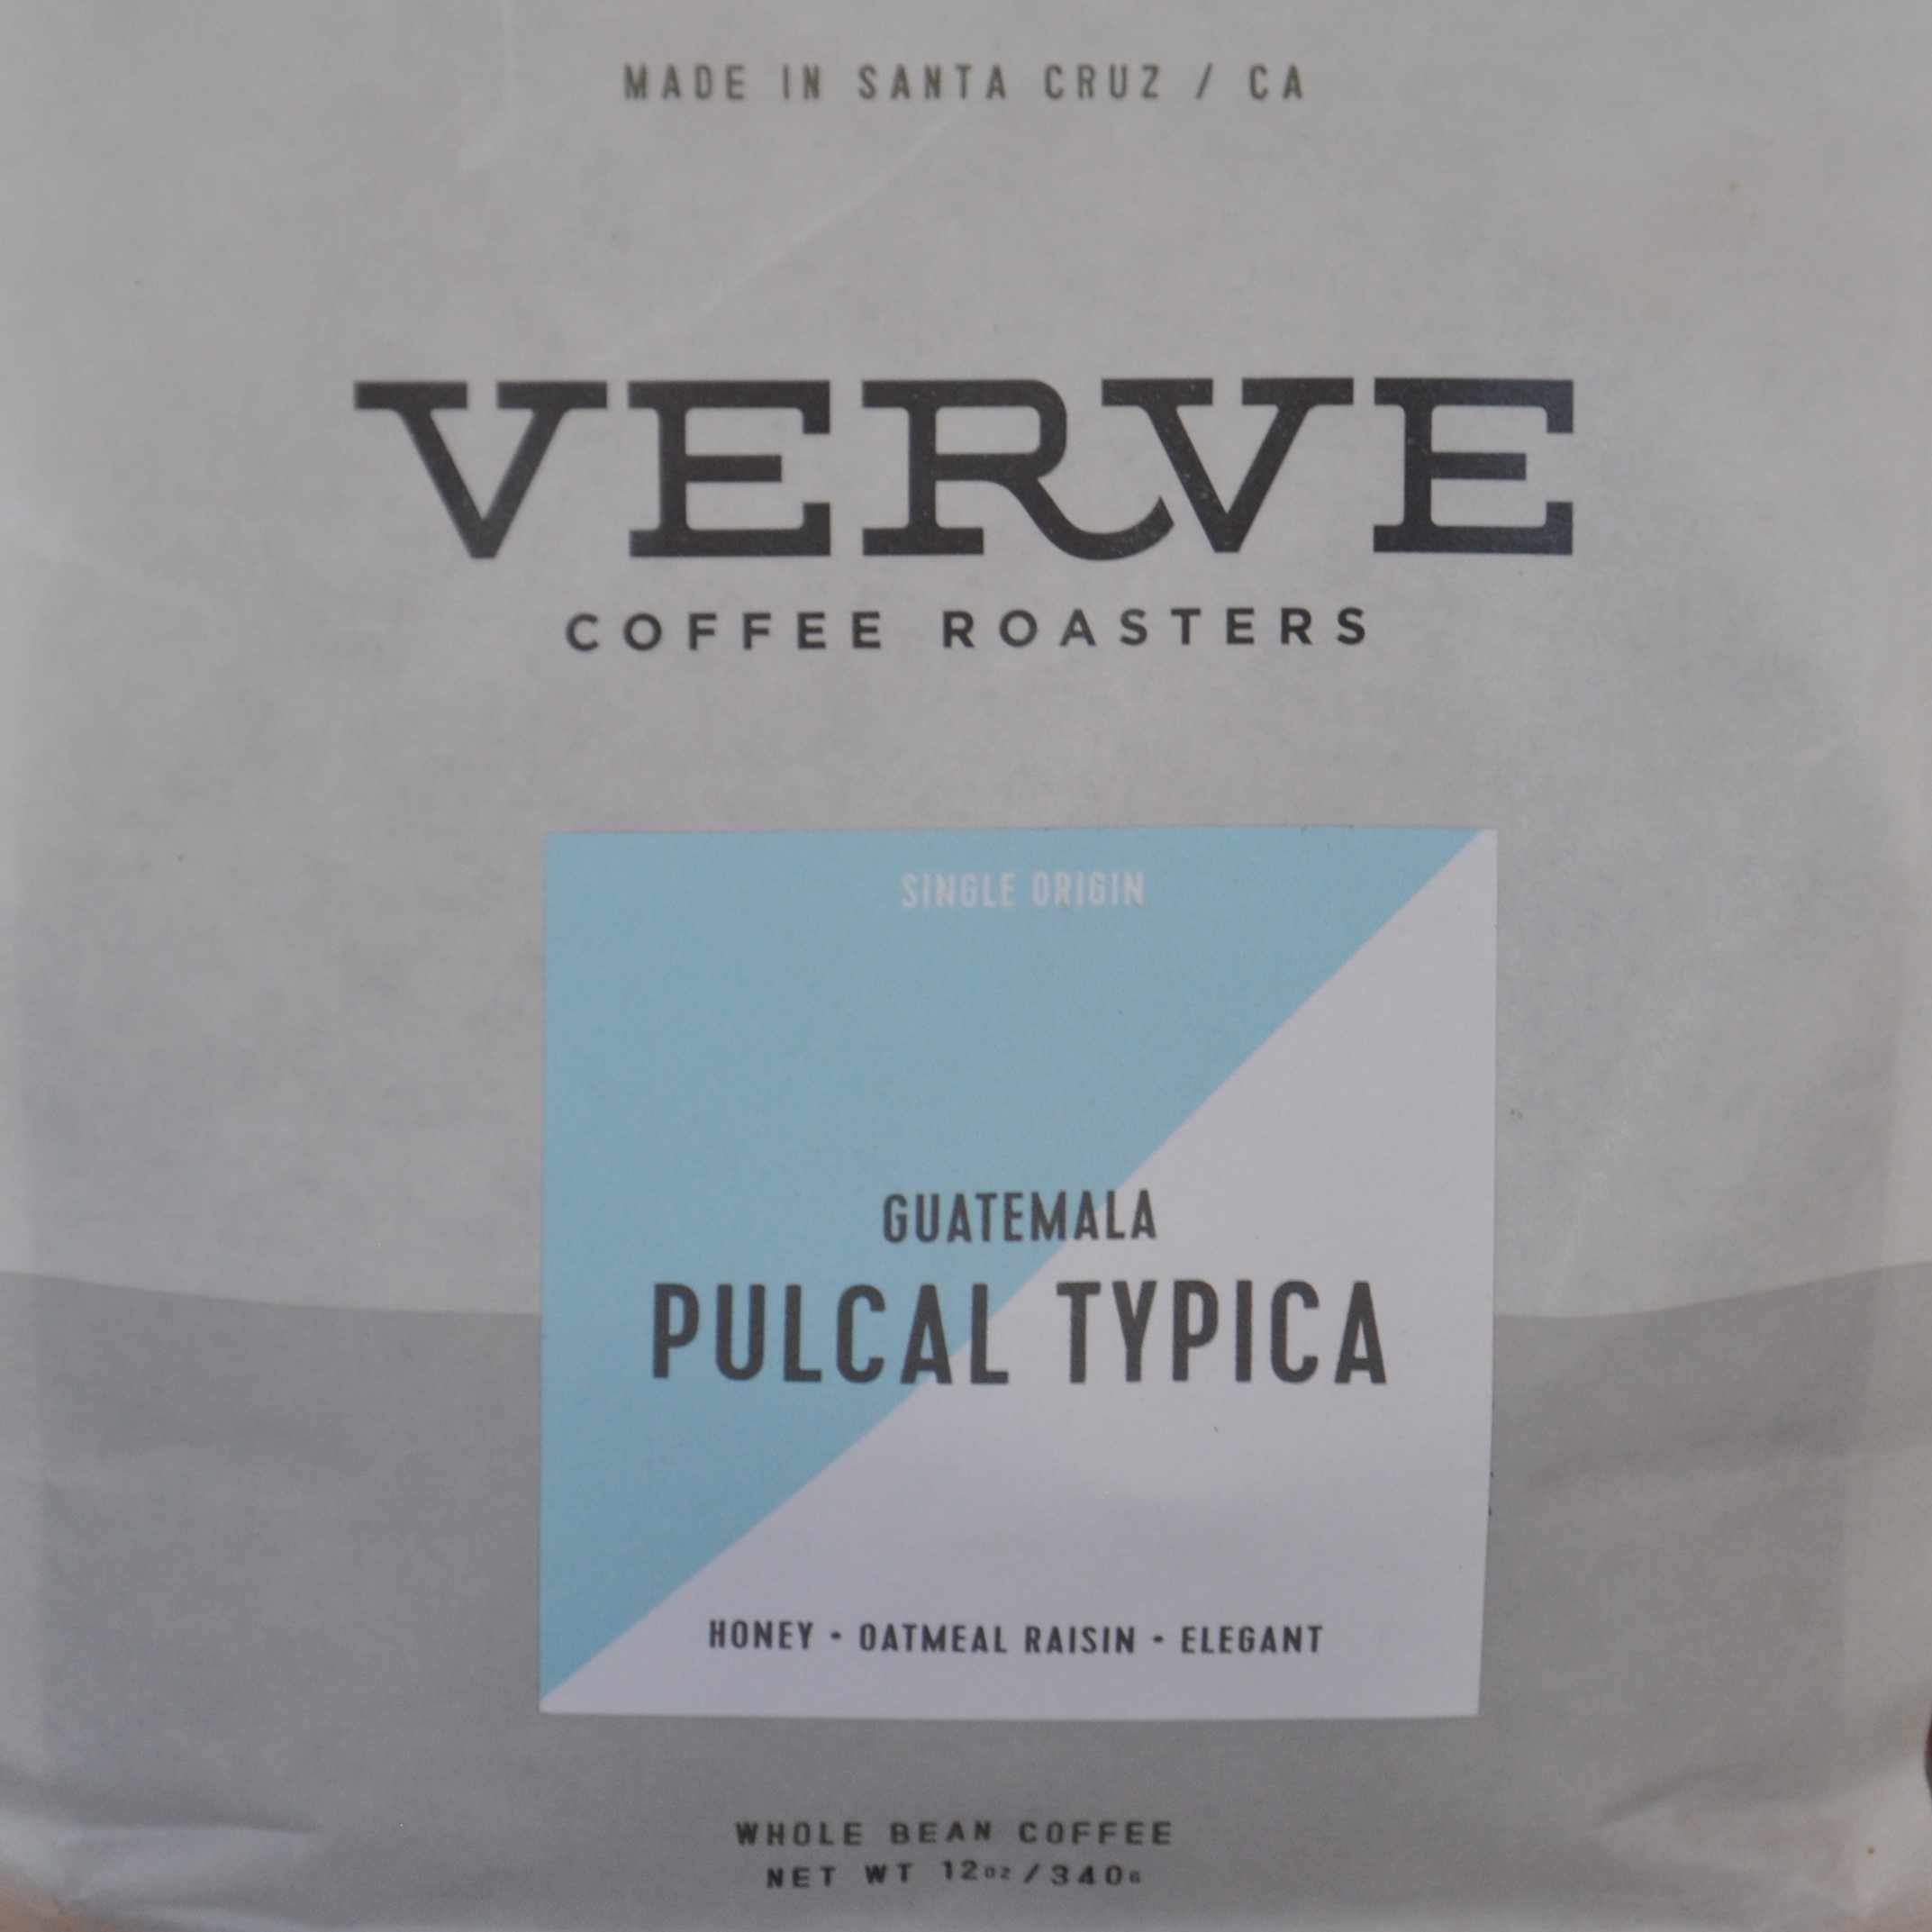 A packet of Verve coffee, a Guatemala Pulcal Typica, taken from a public cupping at the store on Pacific Avenue in Santa Cruz